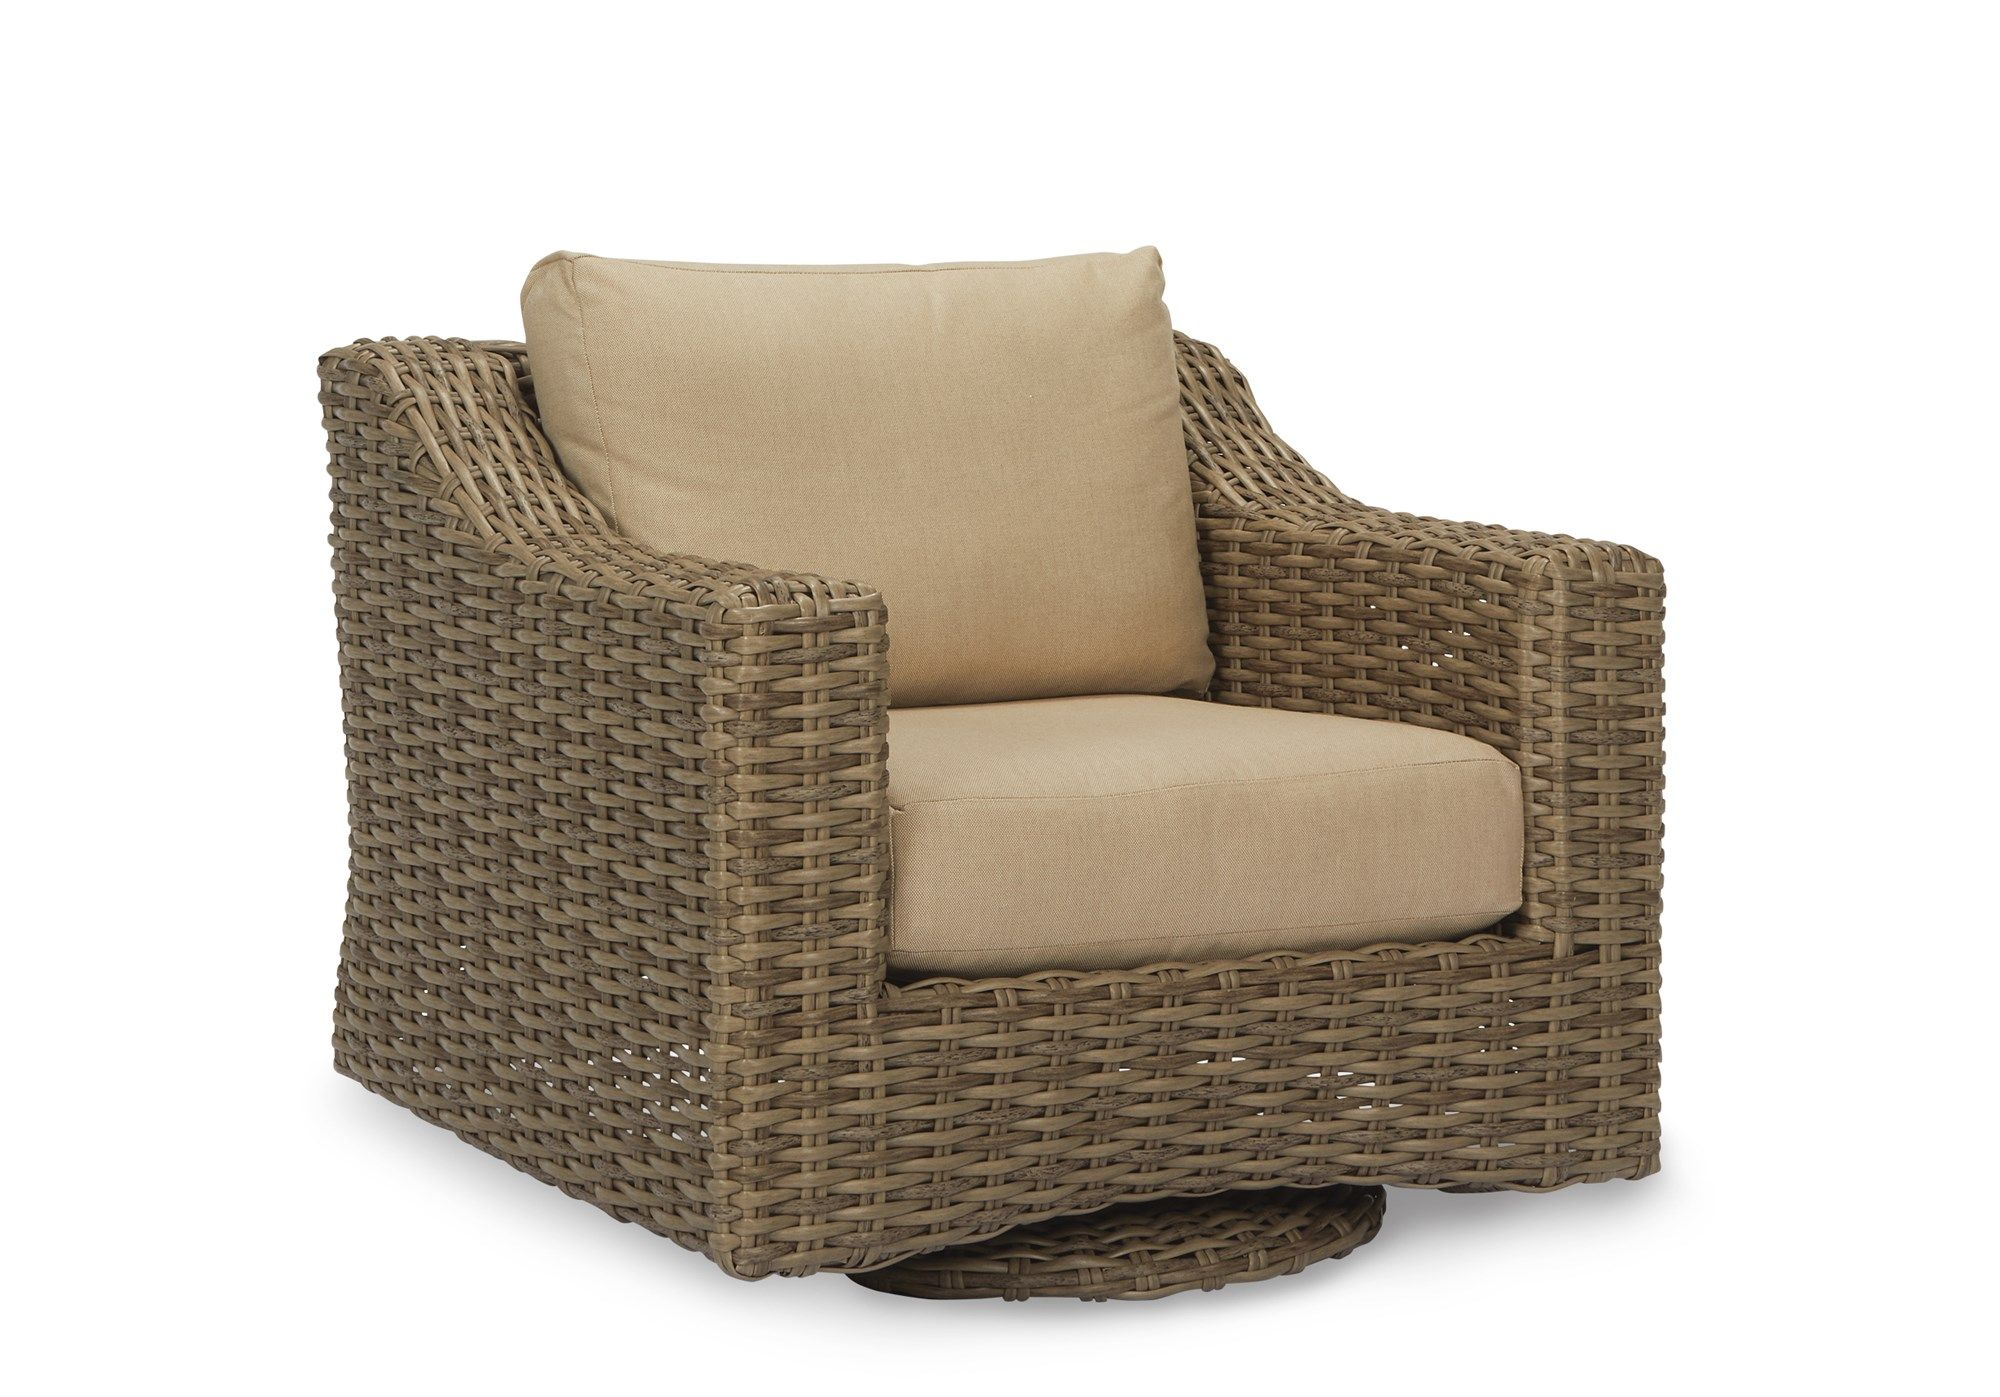 Soro Swivel Glider Chair Chairs Chaises Outdoor Robb Stucky